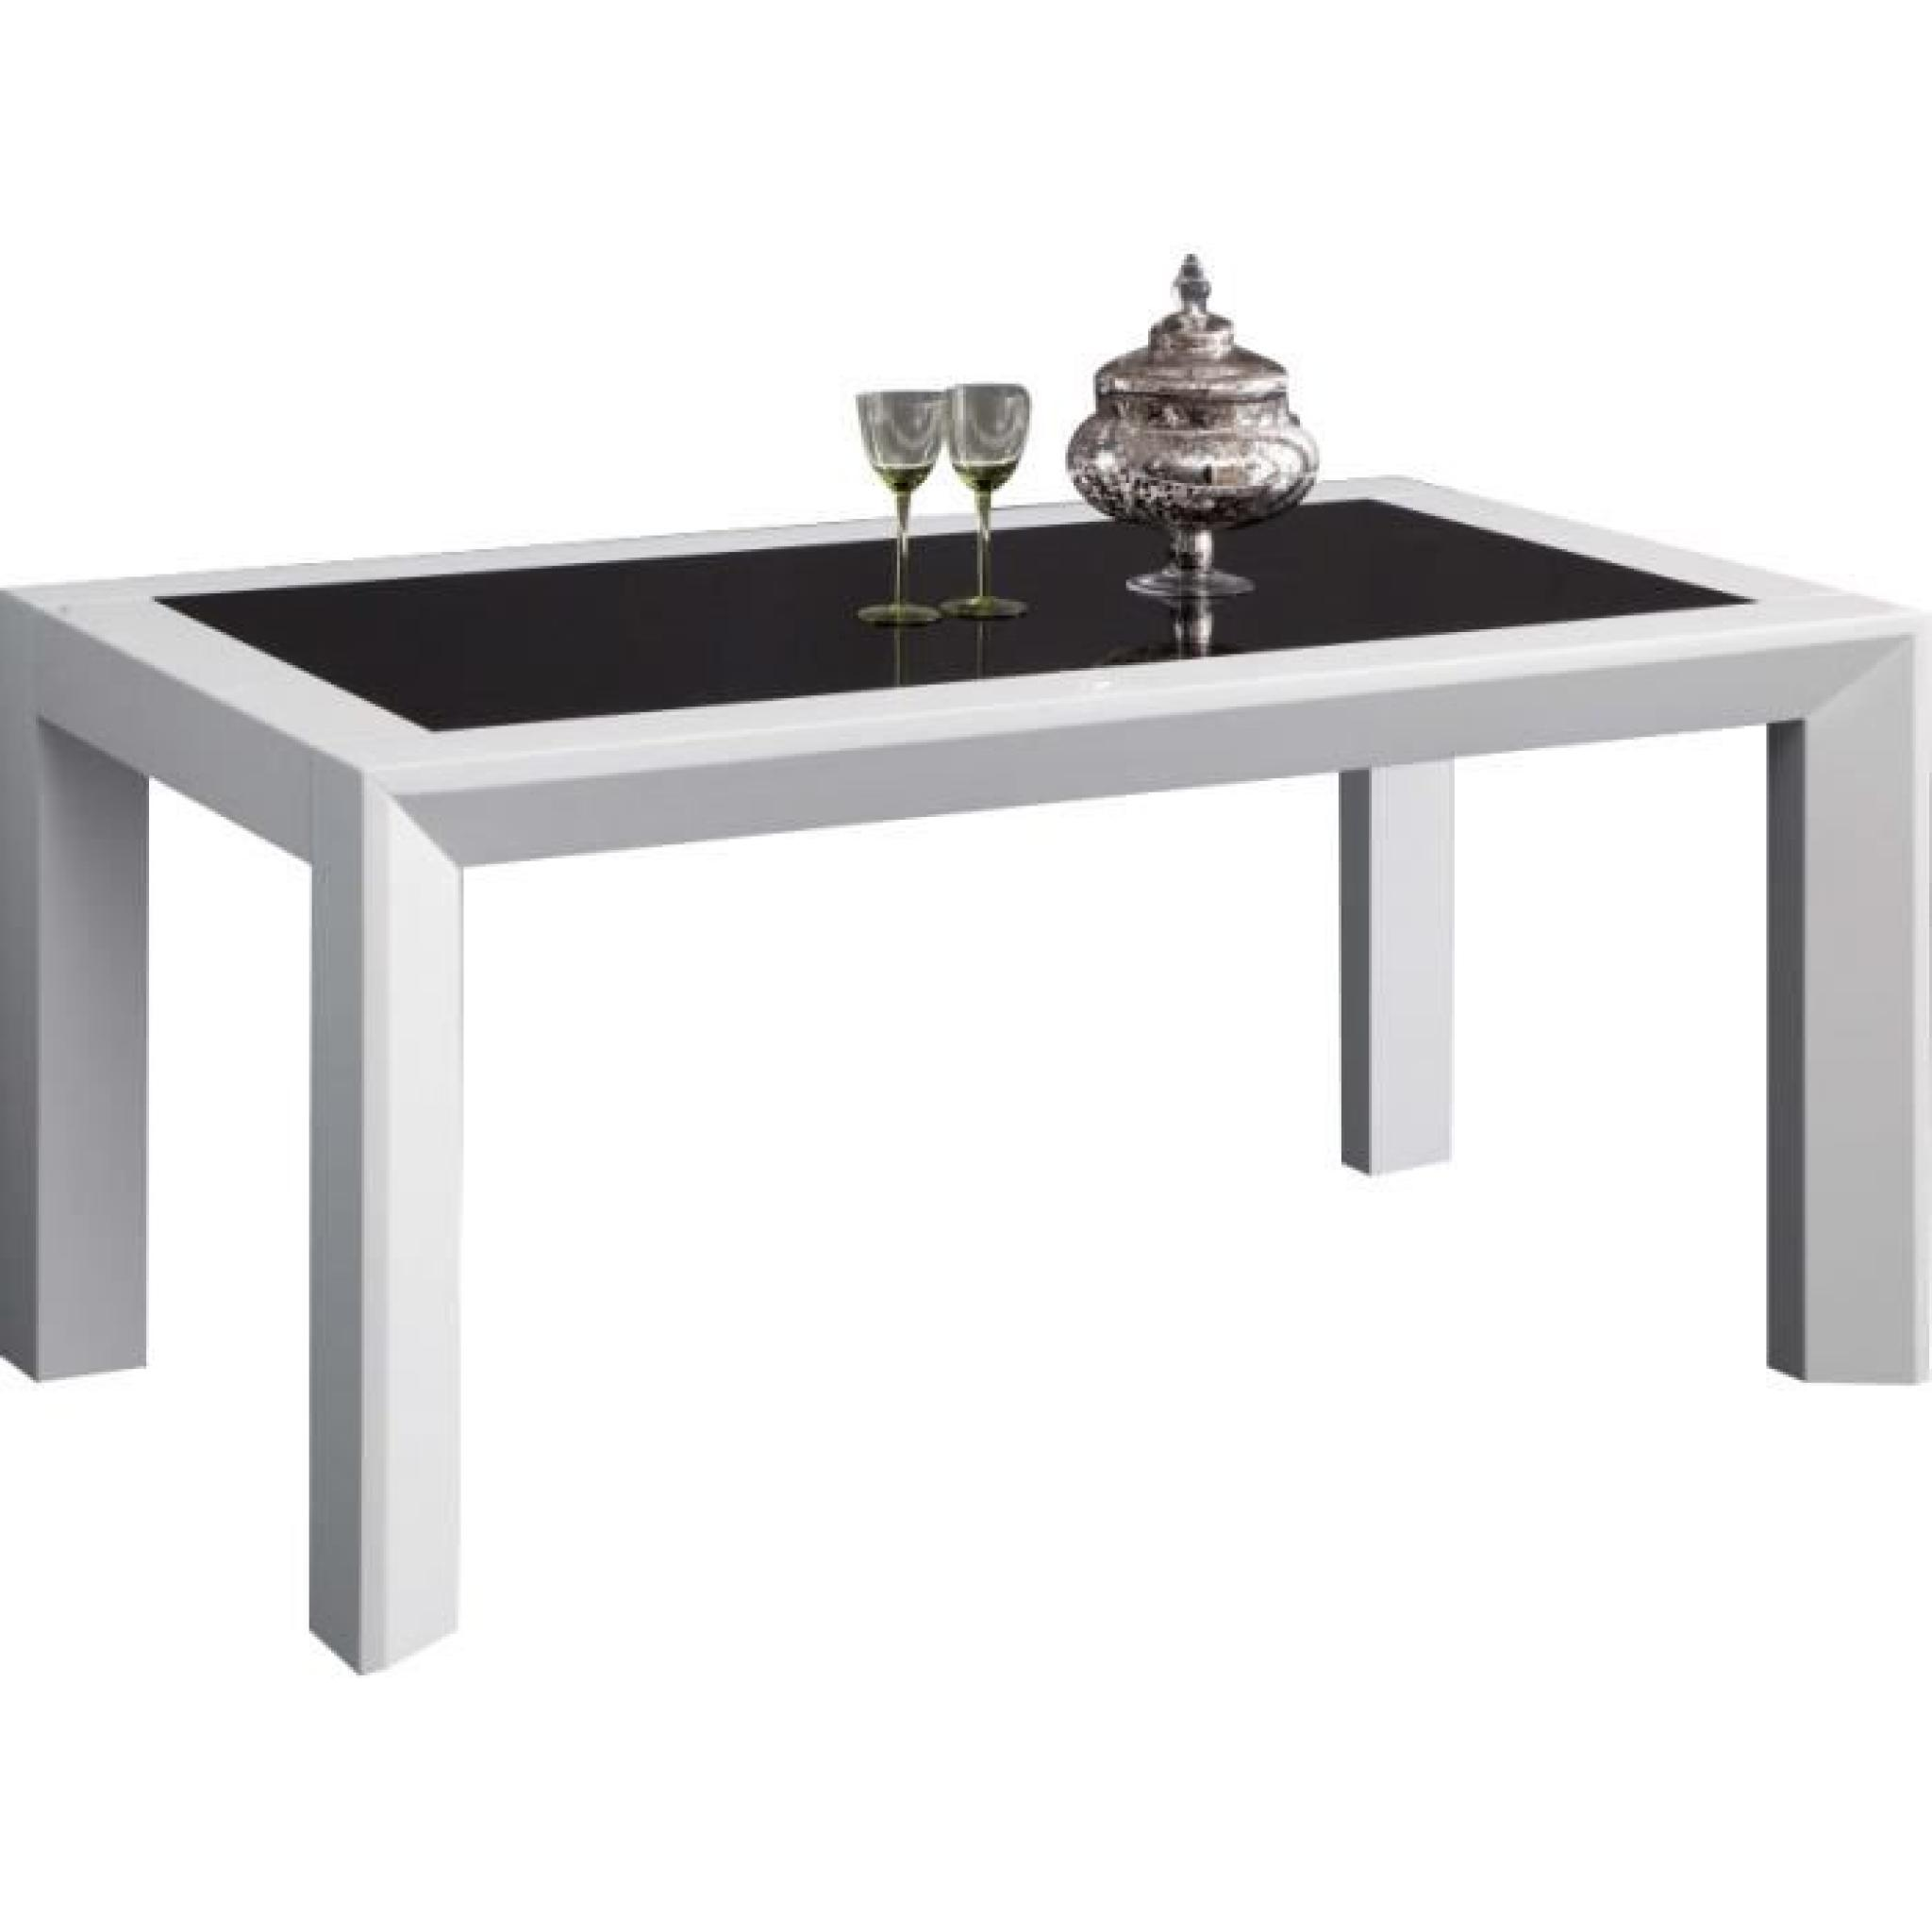 table a manger noir laque maison design. Black Bedroom Furniture Sets. Home Design Ideas